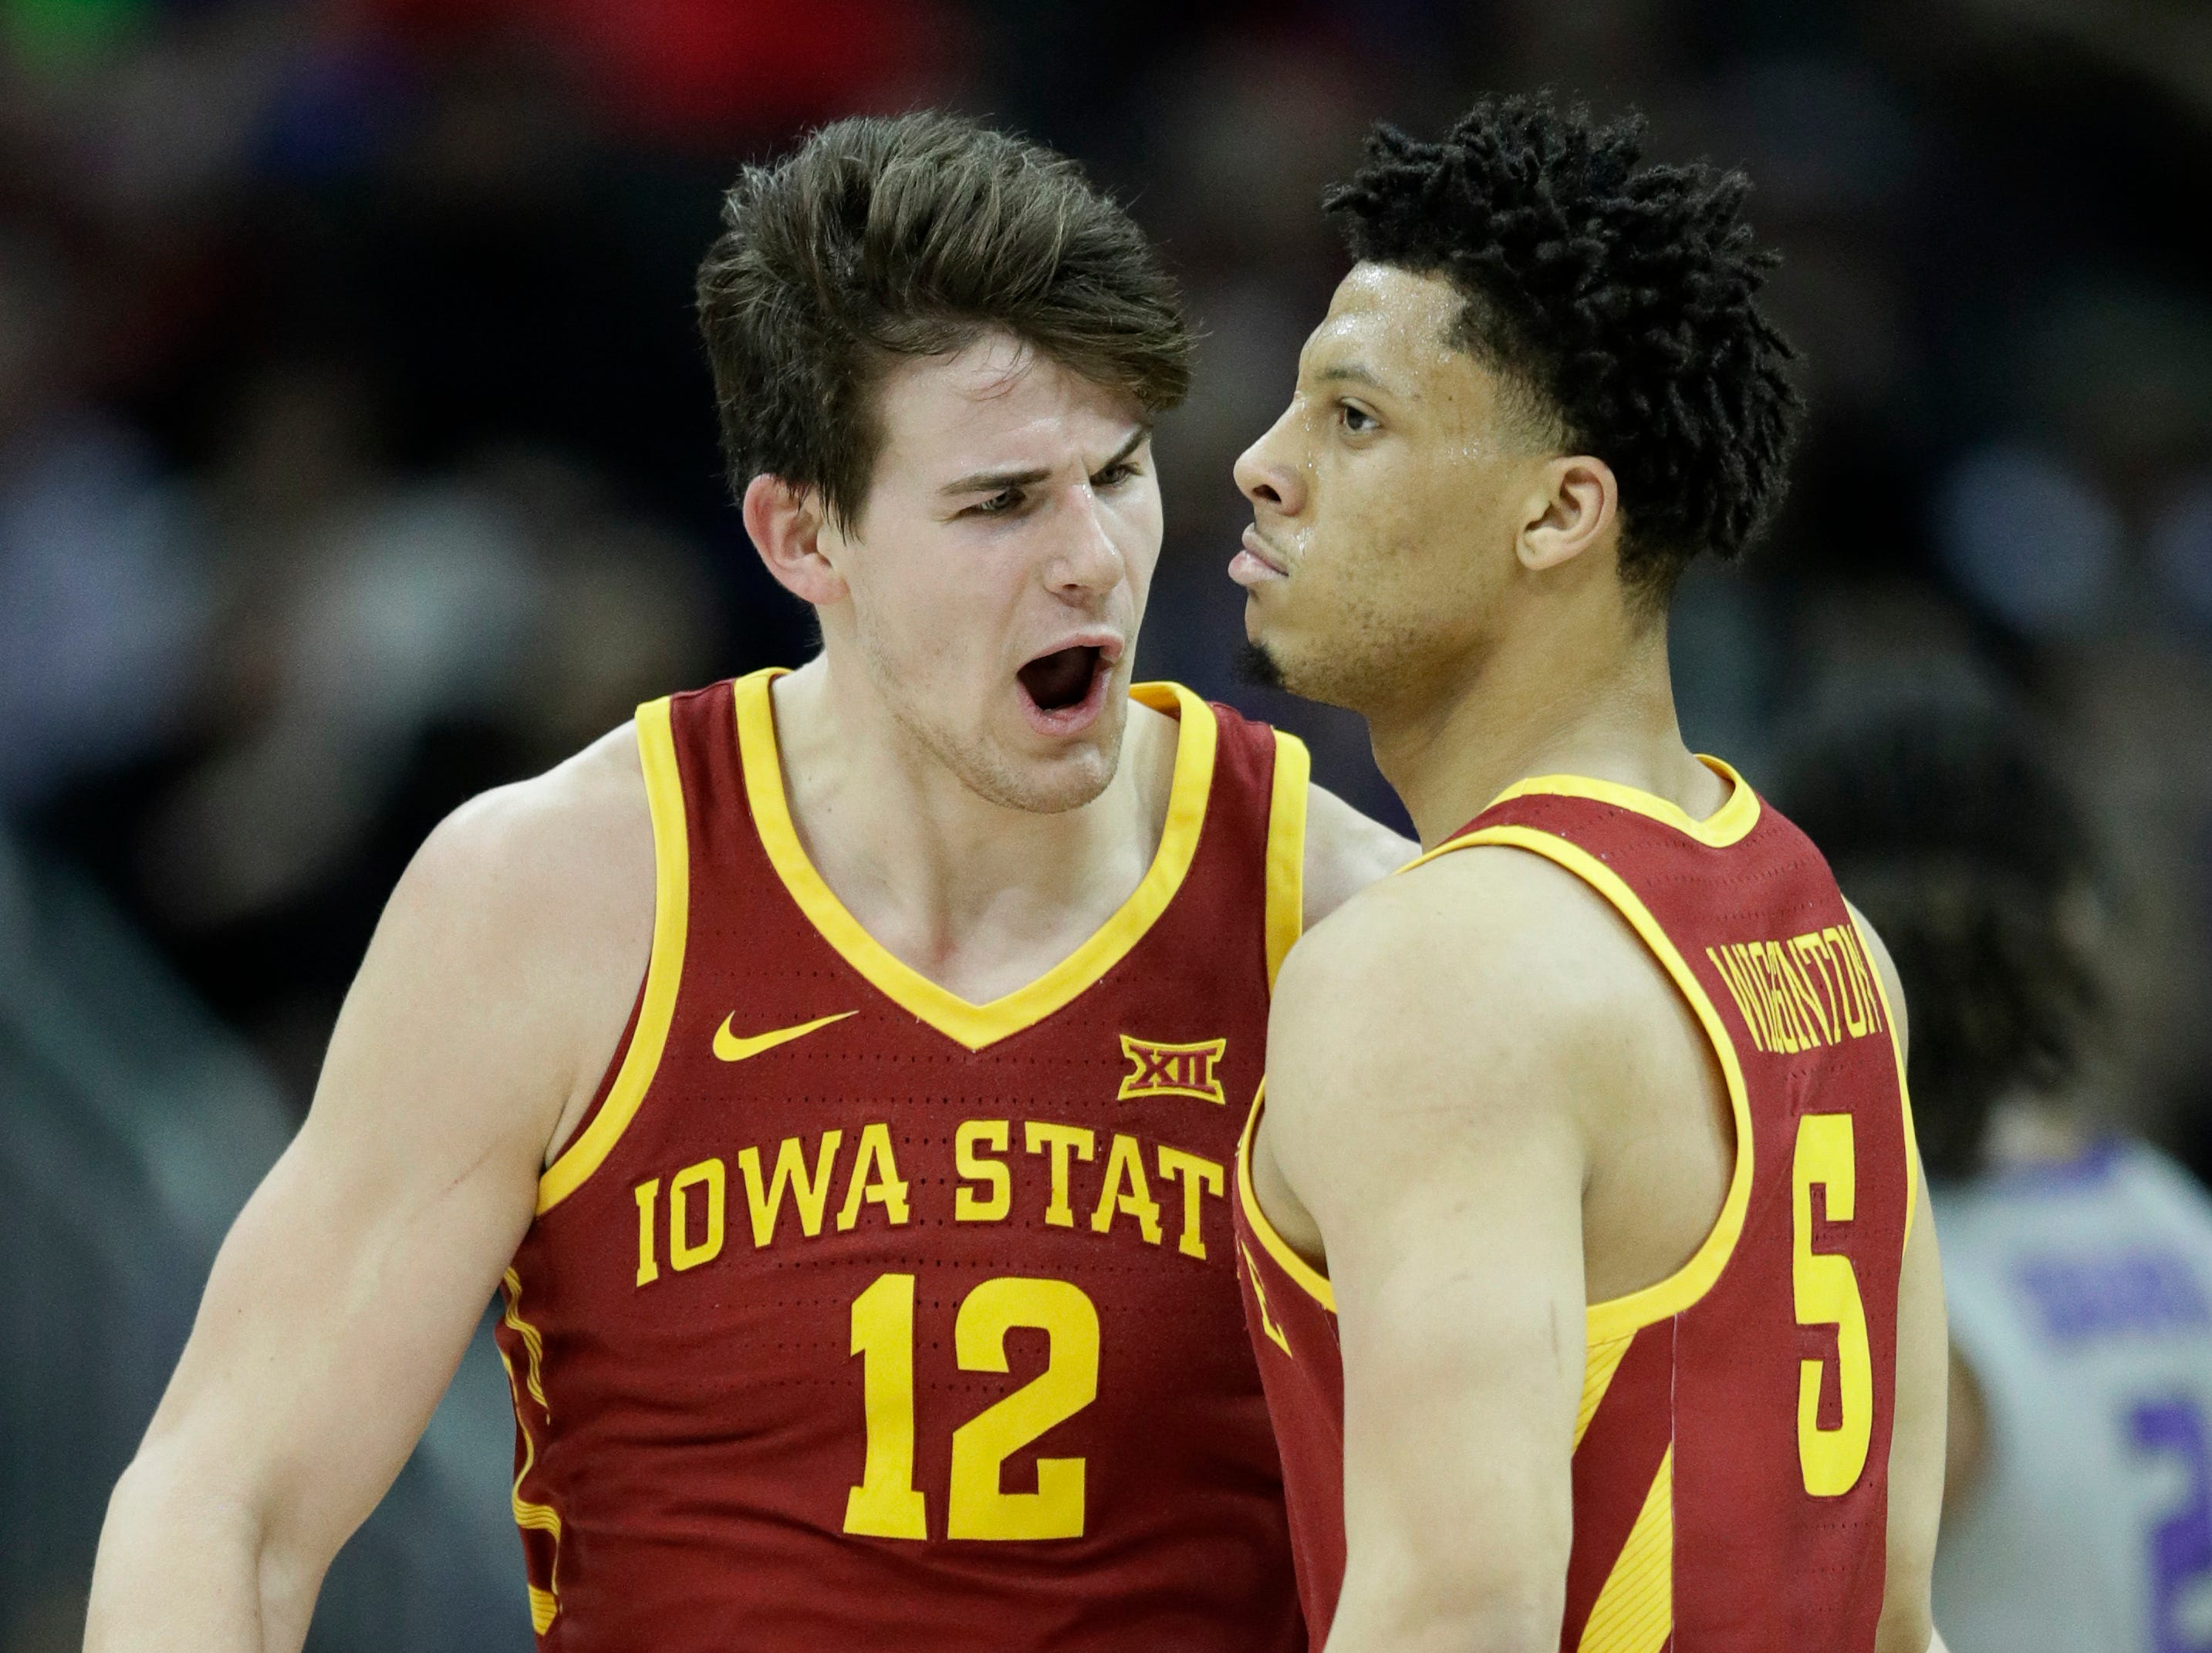 Iowa State forward Michael Jacobson (12) congratulates guard Lindell Wigginton (5) after a made basket during the first half of the team's NCAA college basketball game against Kansas State in the semifinals of the Big 12 conference tournament in Kansas City, Mo., Friday, March 15, 2019. (AP Photo/Orlin Wagner)